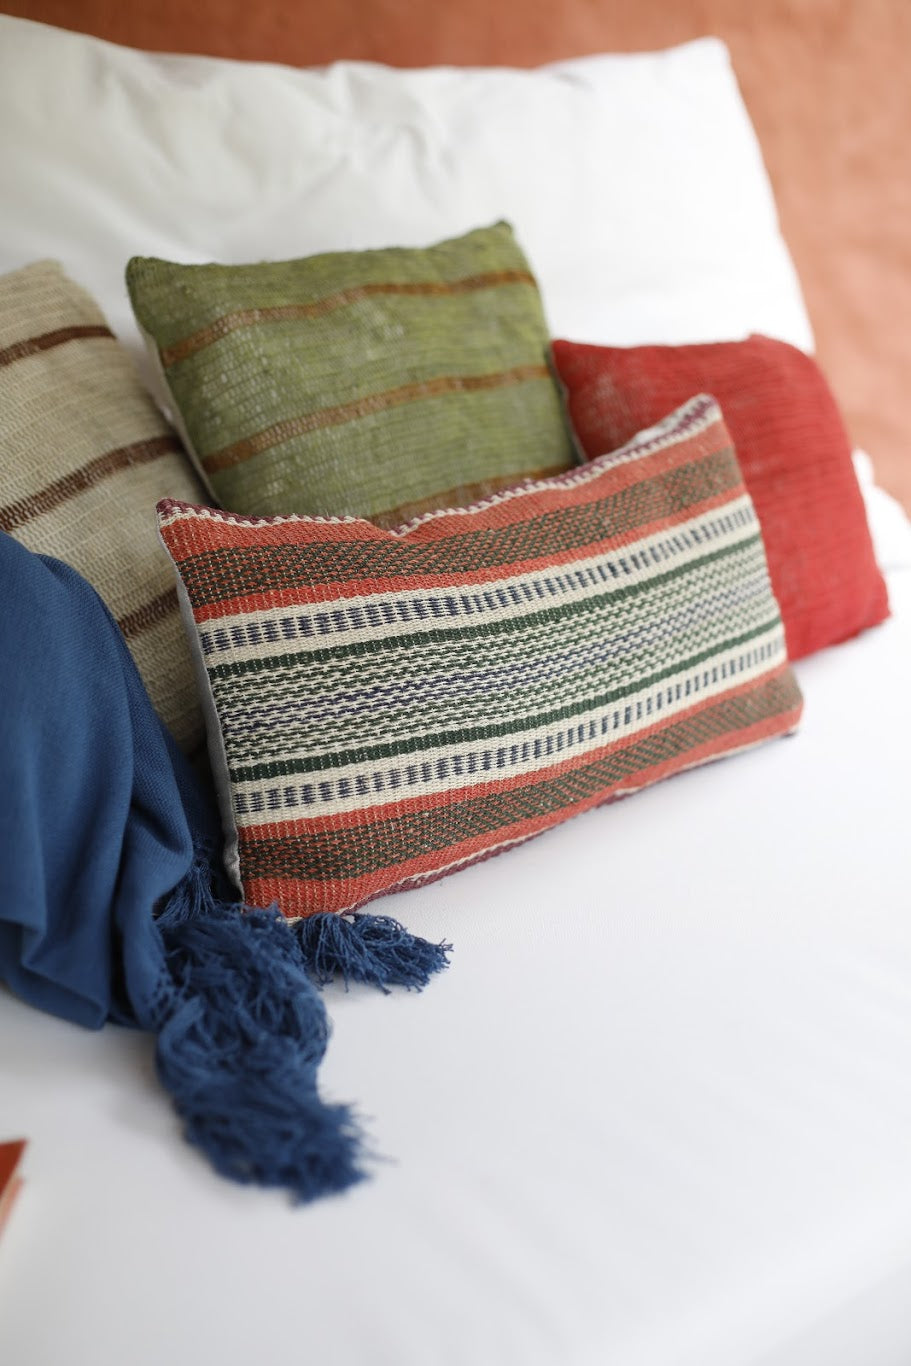 Multicolored Chaguar Loom Cushion with Patterned Design.